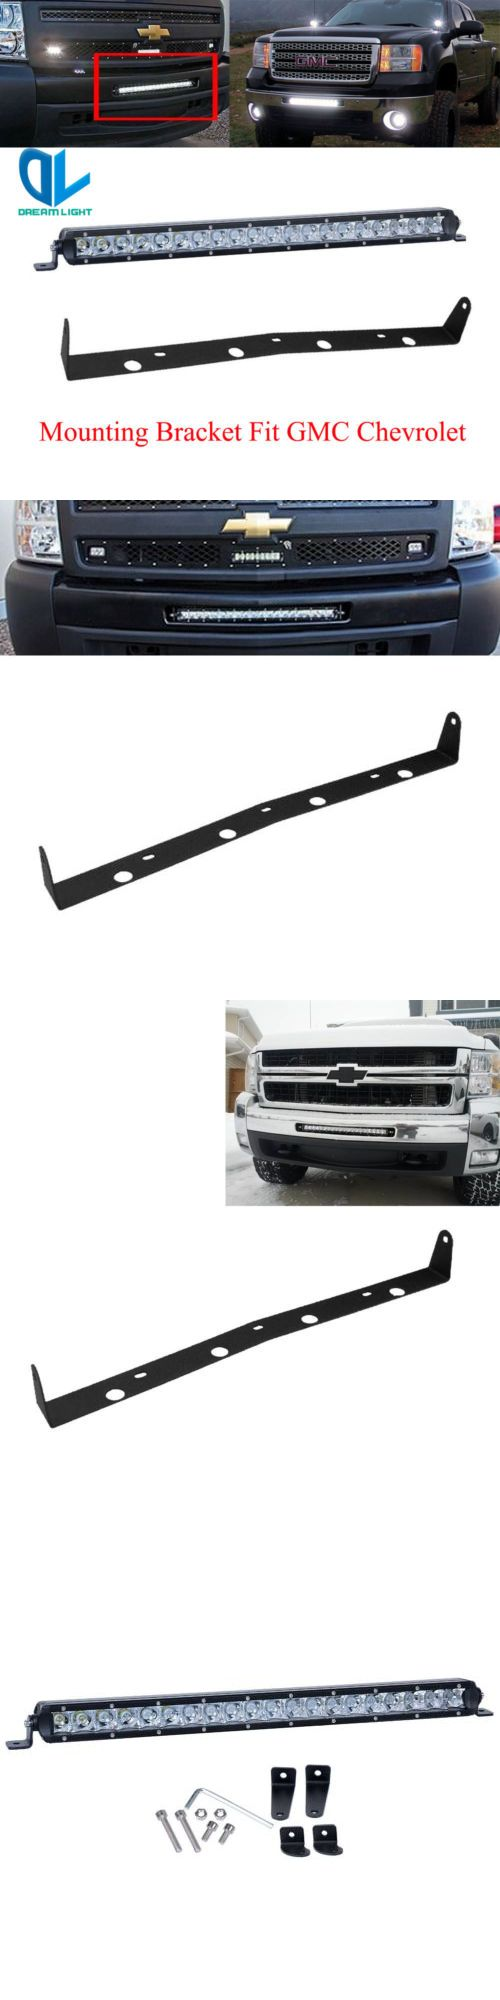 Car Lighting: 20 Led Light Bar With Front Hidden Bumper Mount Bracket For Gmc Chevy Silverado -> BUY IT NOW ONLY: $110.65 on eBay!